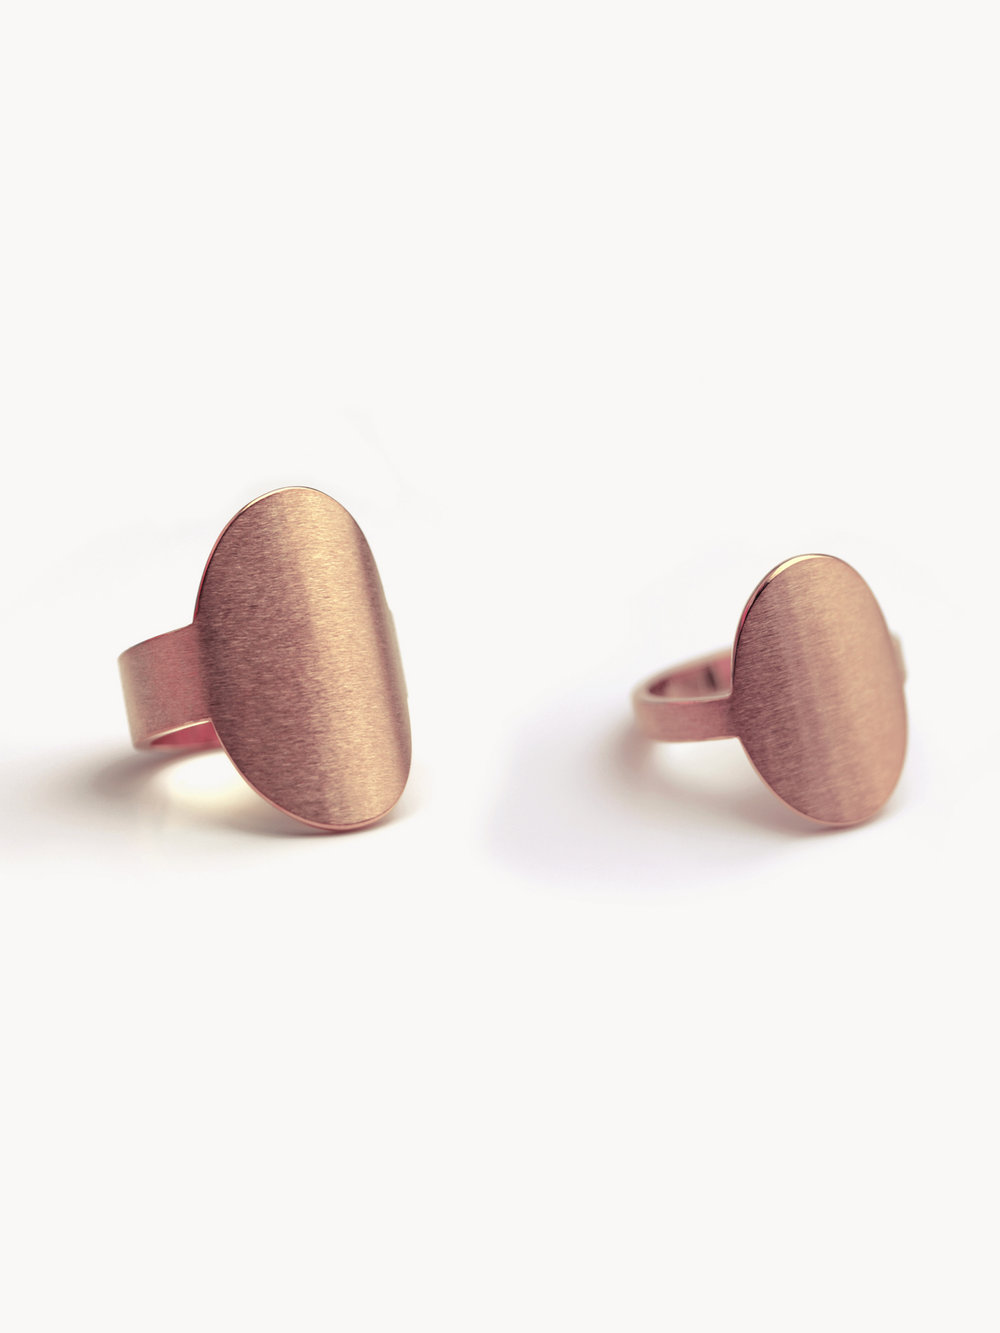 Übersicht Siegelringe hochoval in 585 Rosegold/ Summary ring vertical oval in 14kt rosegold